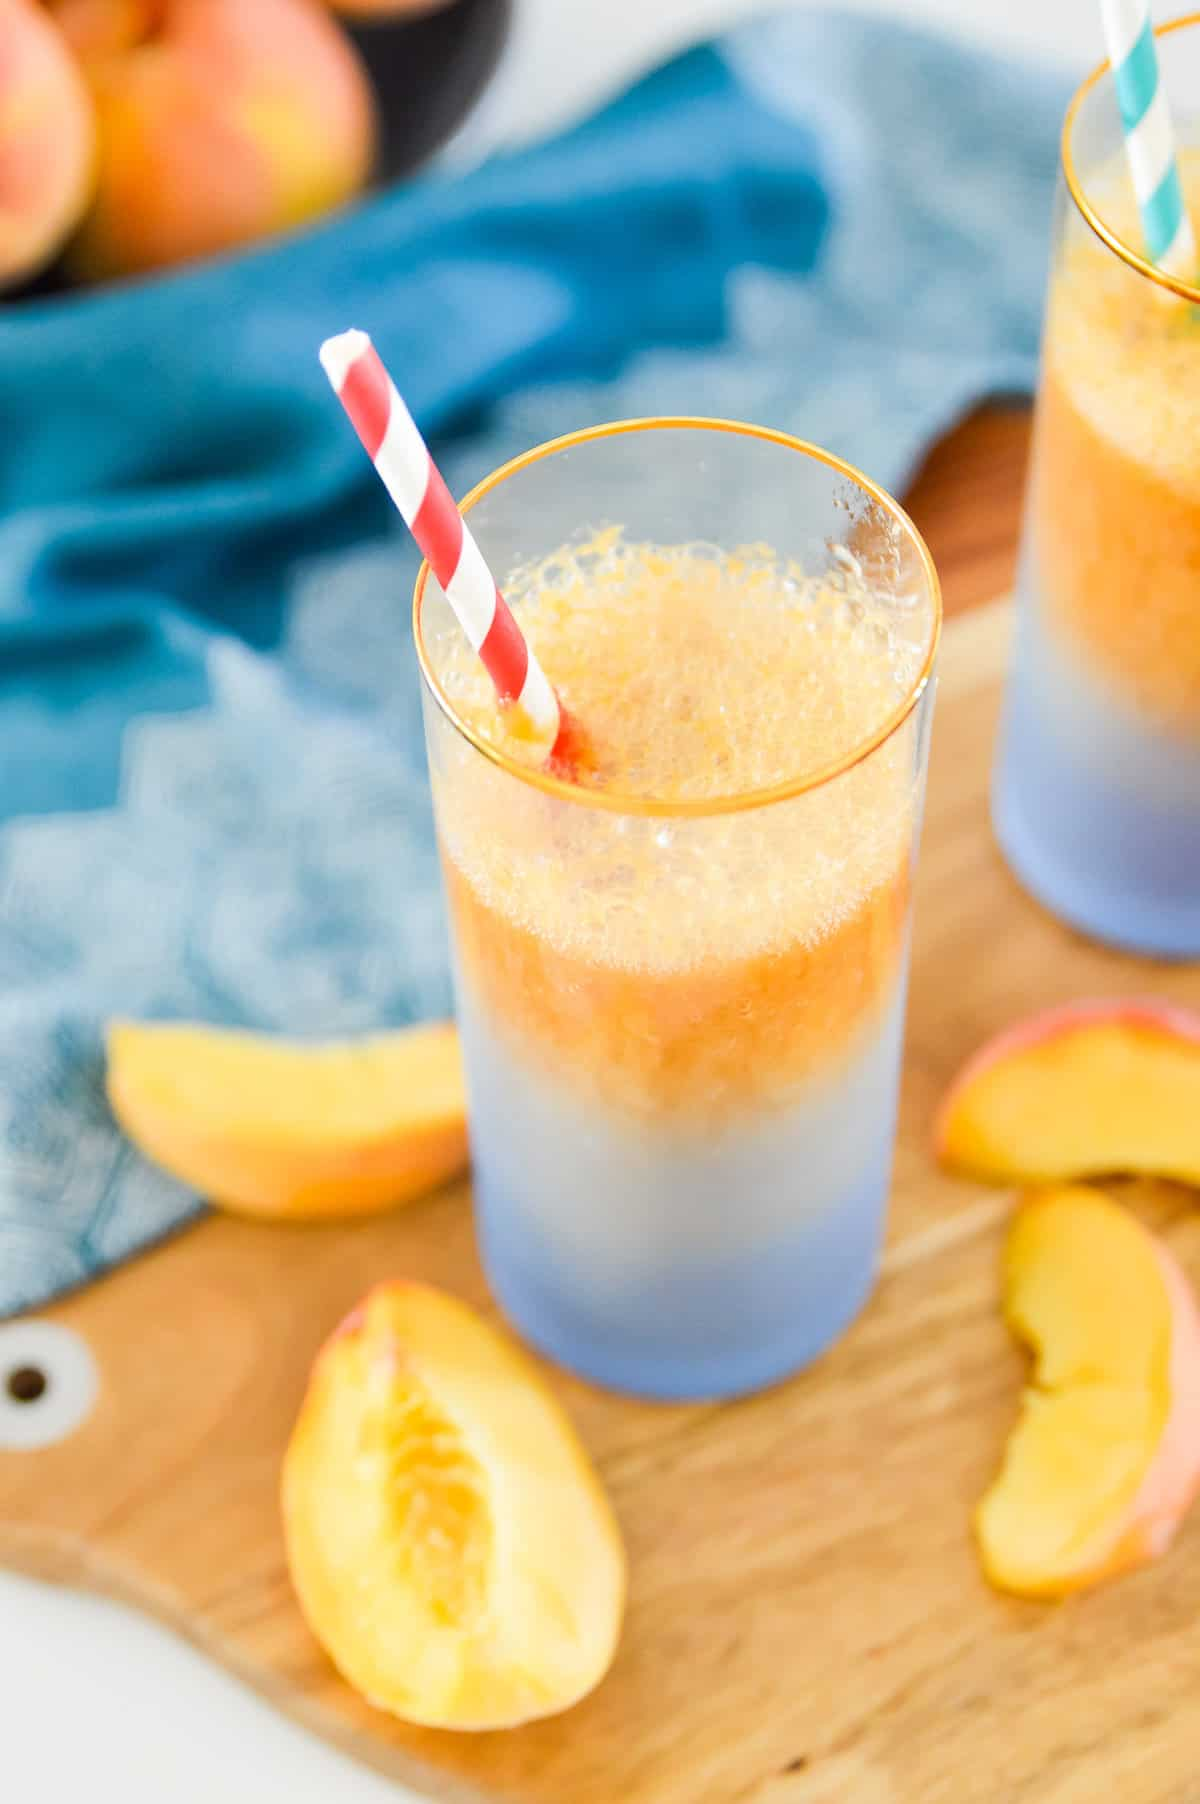 This Peach Ginger Fizz is the perfect summer drink! Made with no added sugars and only 3 ingredients you are going to love this Peach Ginger Fizz. Serve this Peach Ginger Fizz at your next party for an easy, healthy cocktail.